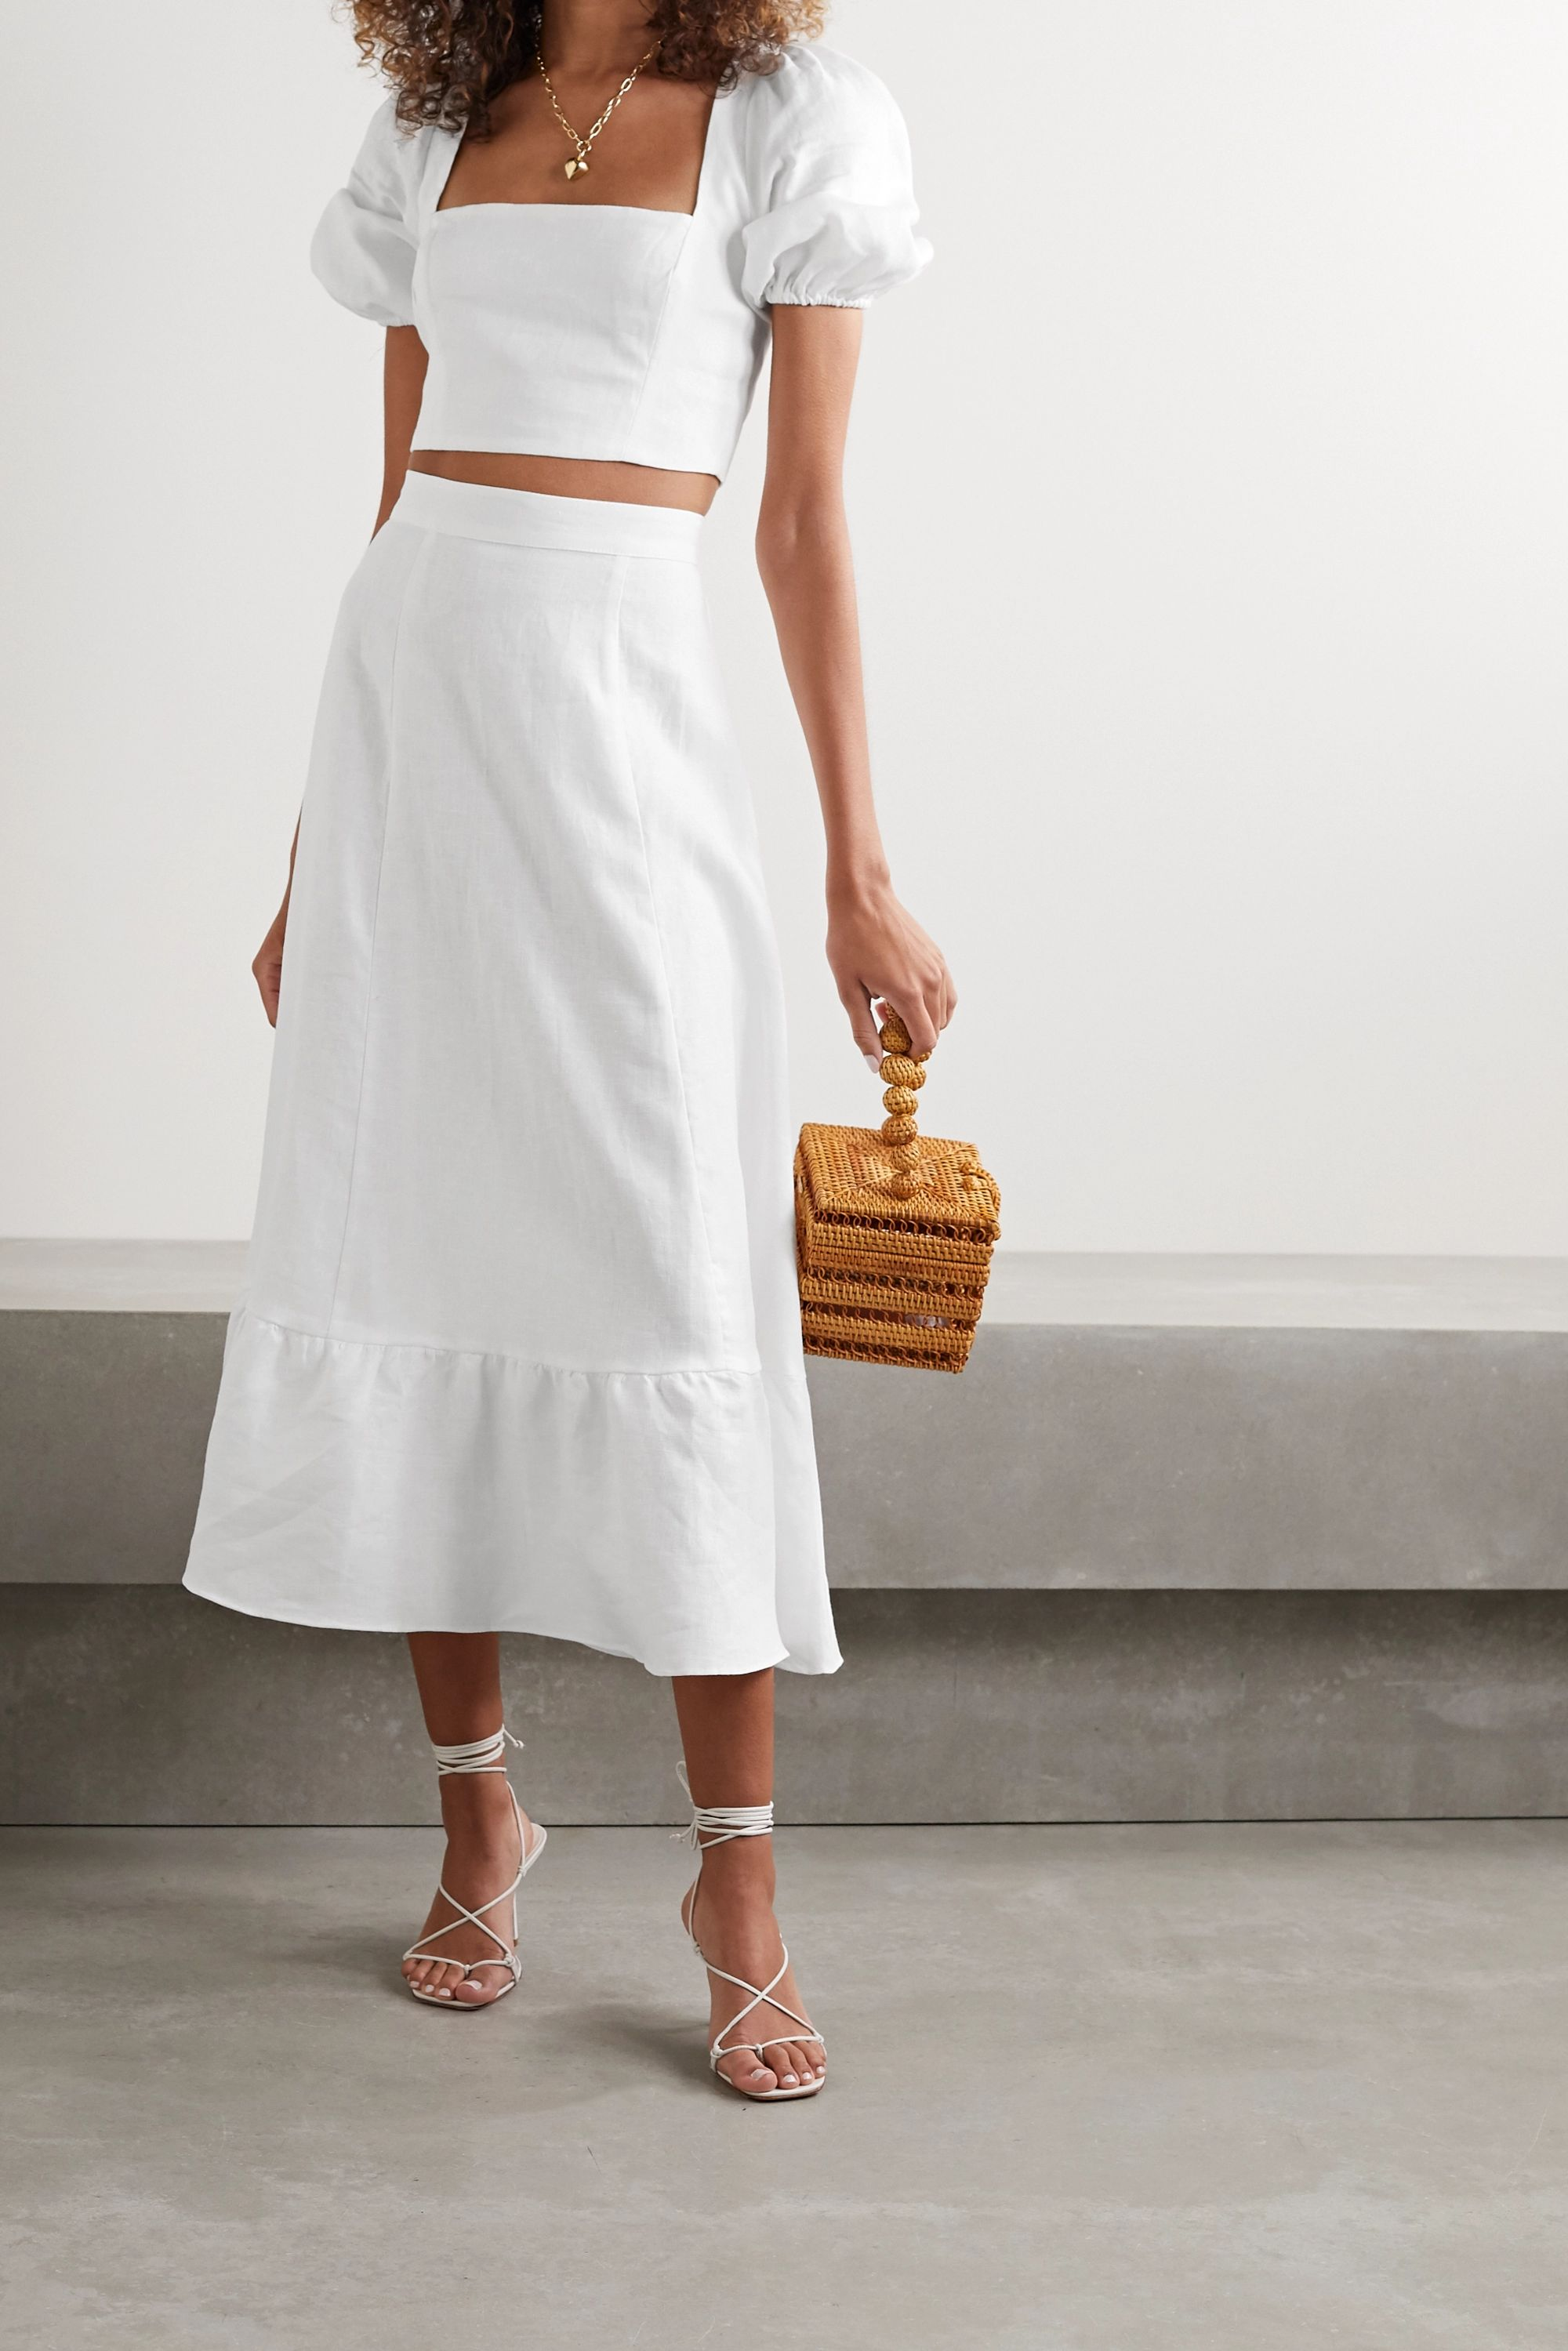 Reformation Yucca smocked ruffled linen top and midi skirt set